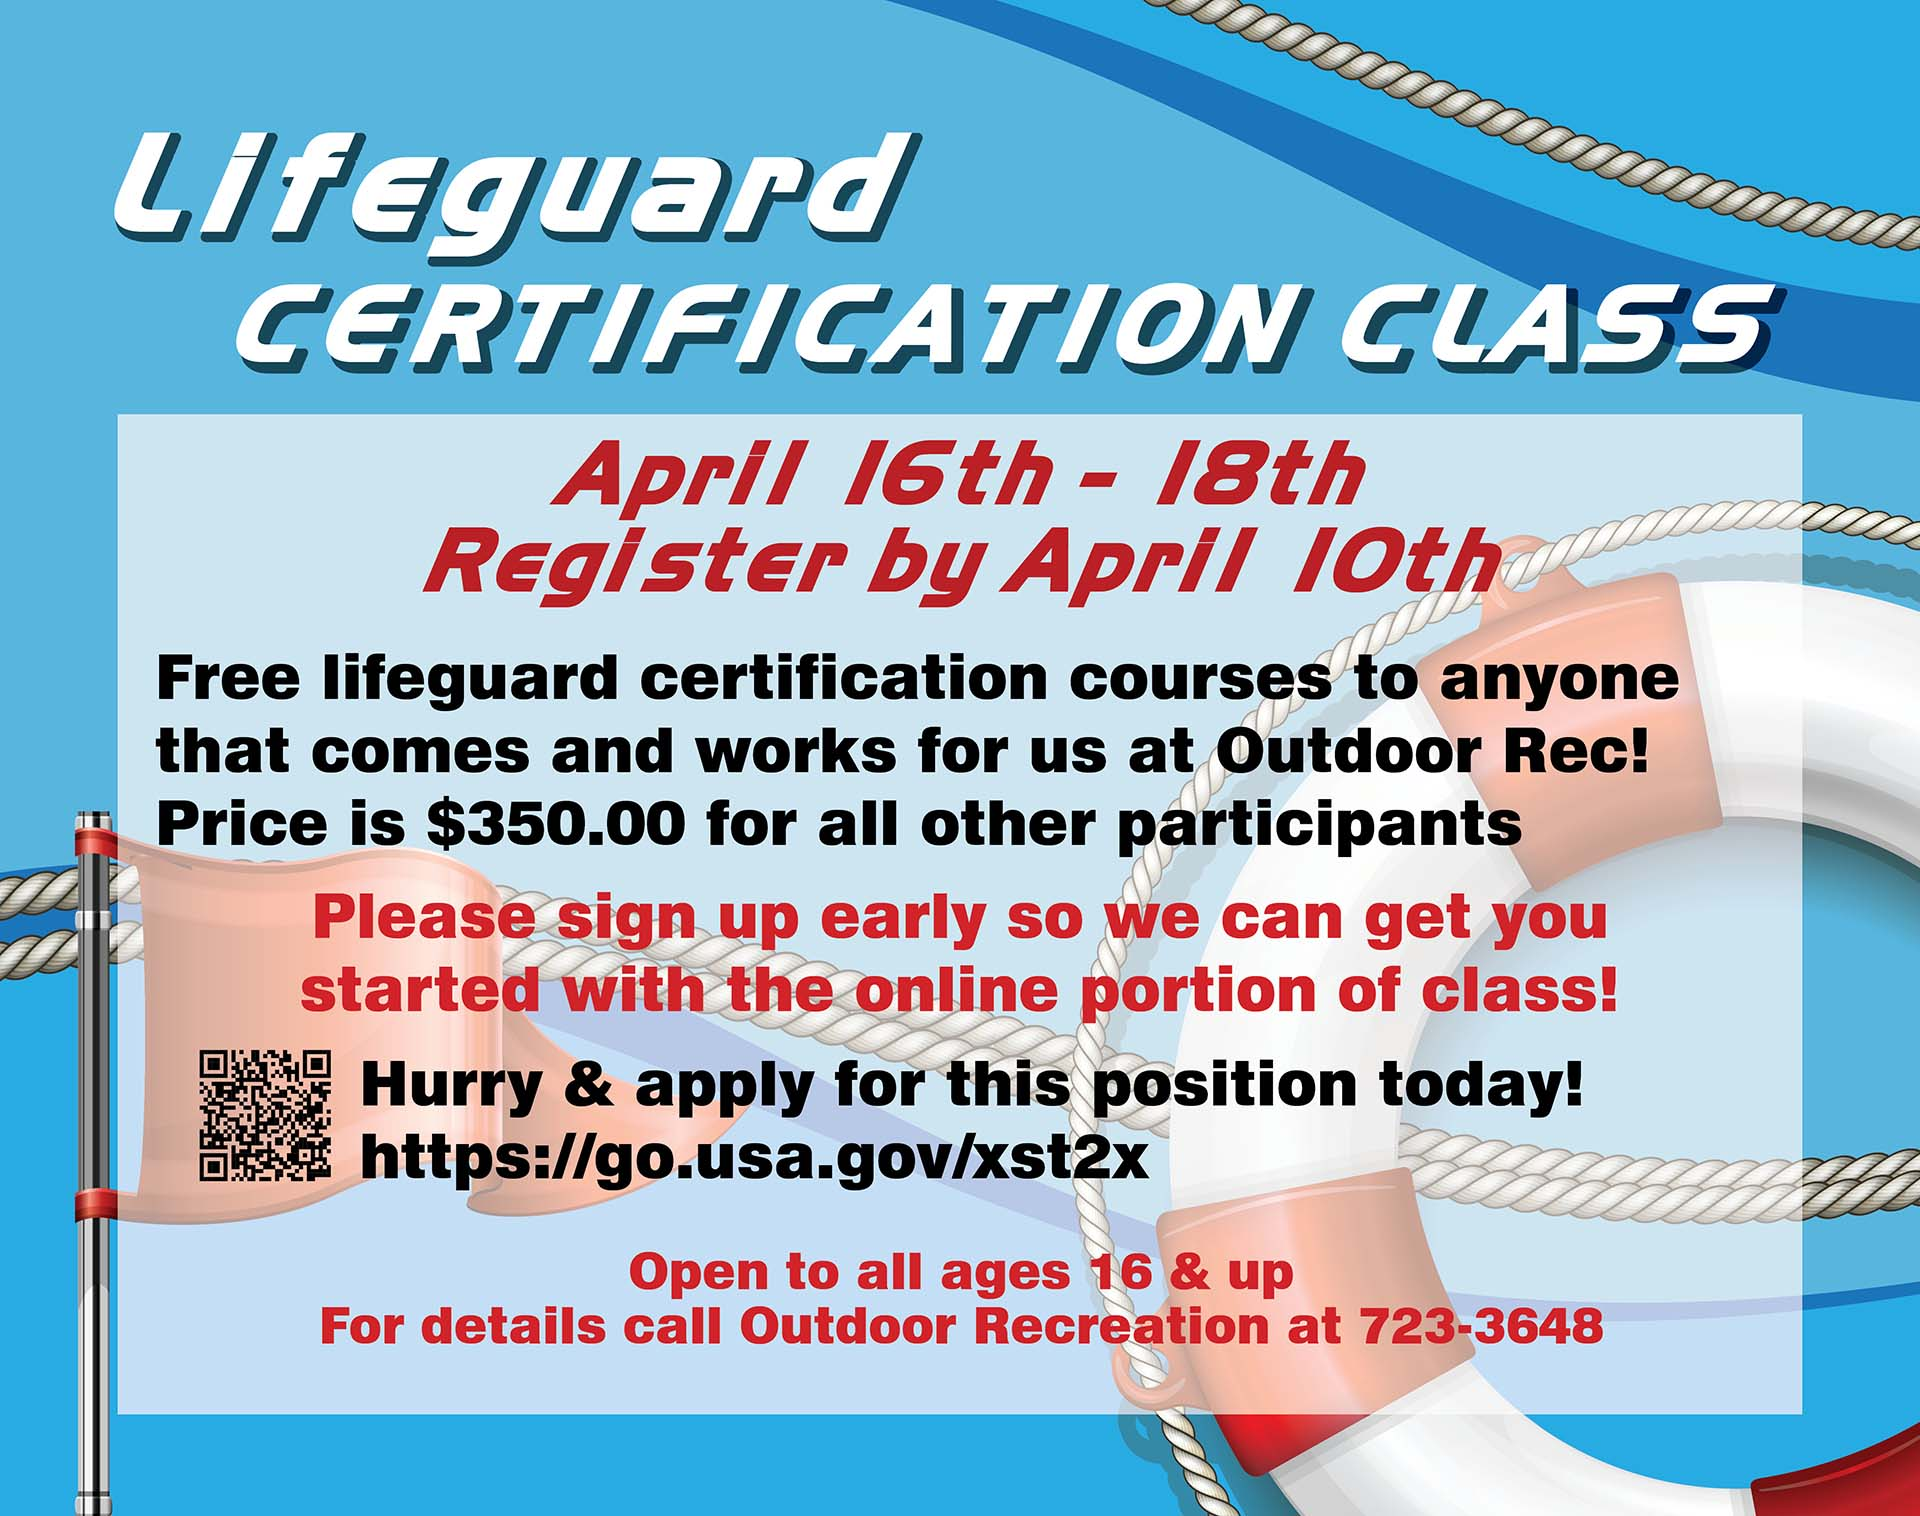 Registration Ends: Lifeguard Certification Class